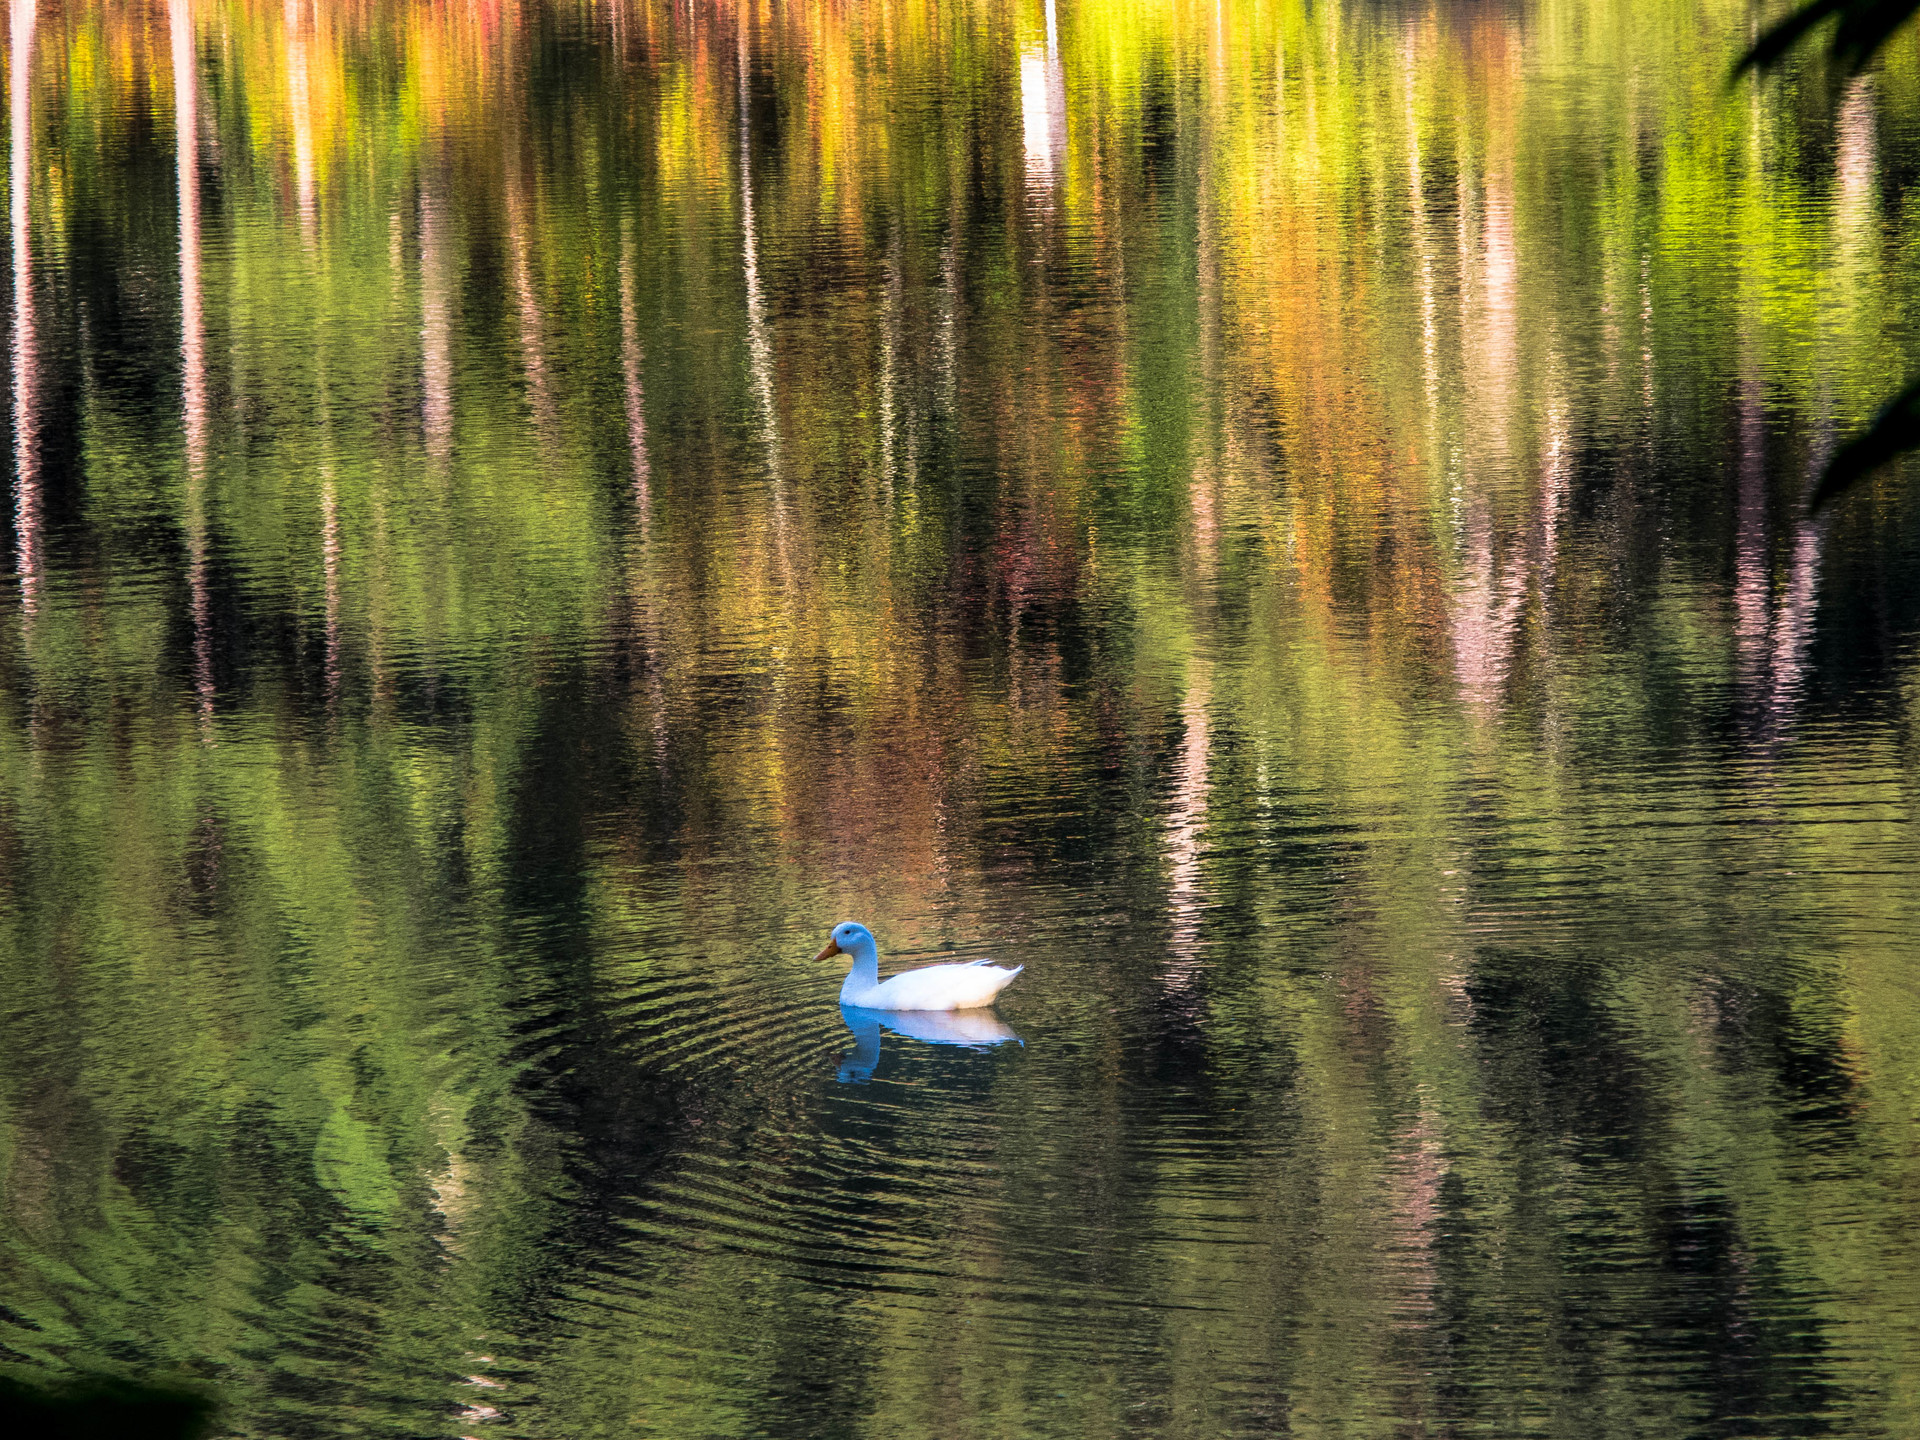 Rainbow Bokeh. A suck swimming in a pond reflecting fall leaves